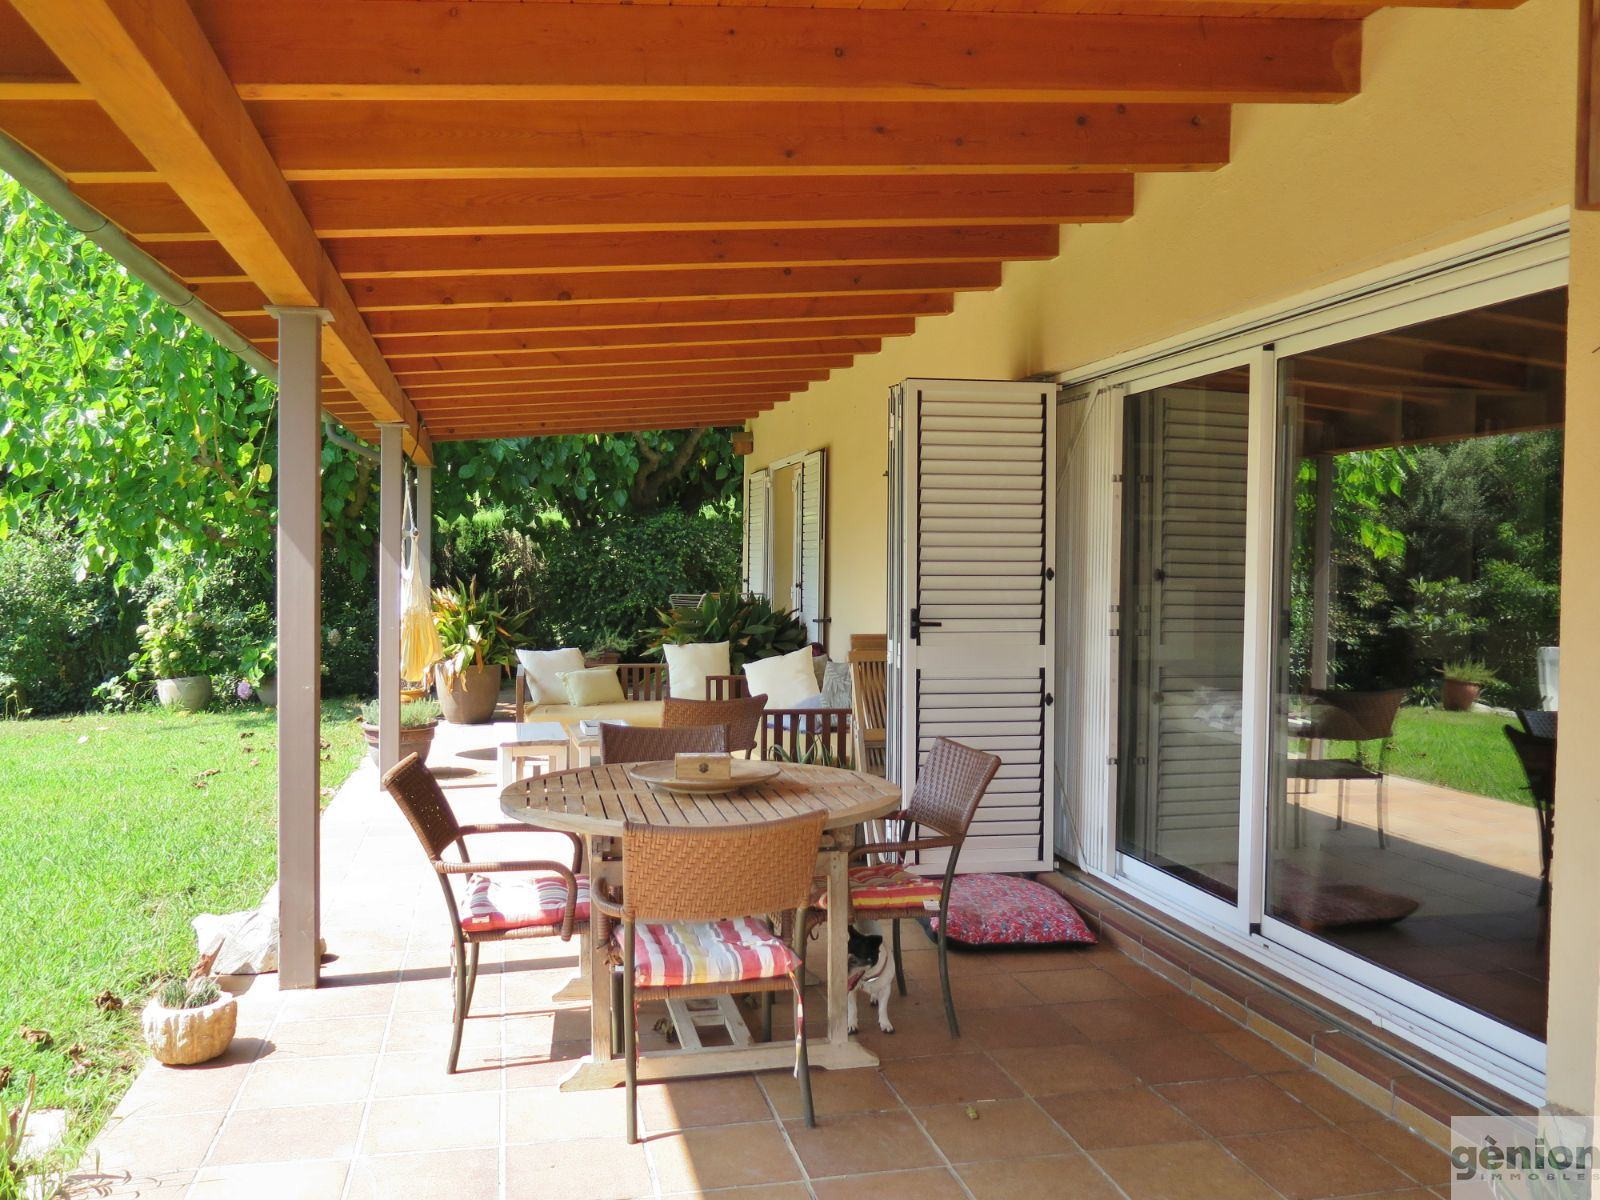 DETACHED HOUSE IN AMER (LA SELVA), SINGLE-STOREY PROPERTY WITH LARGE GARDEN AND SWIMMING POOL